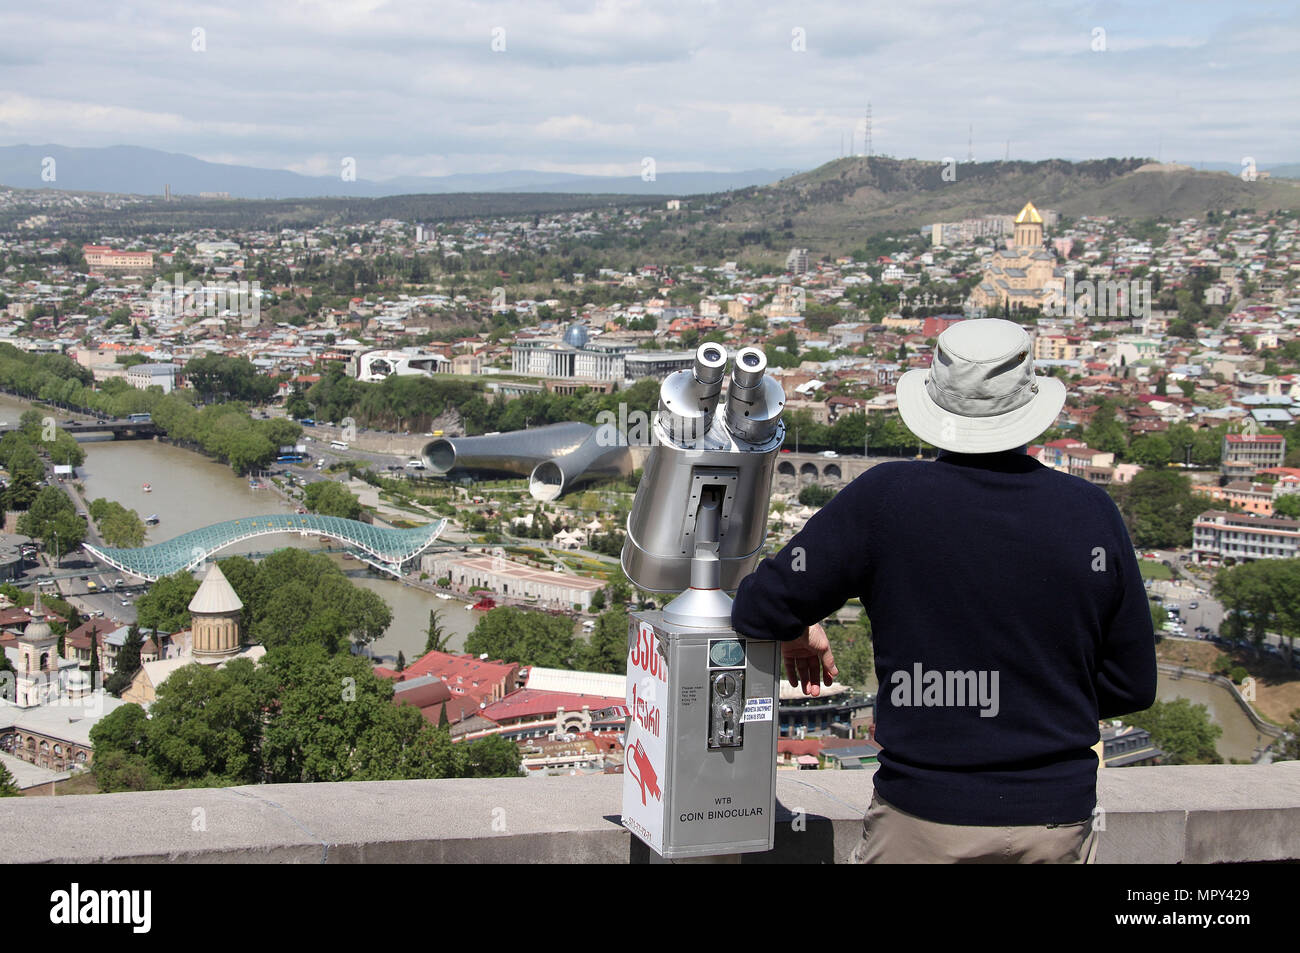 Sightseeing in Tbilisi - Stock Image